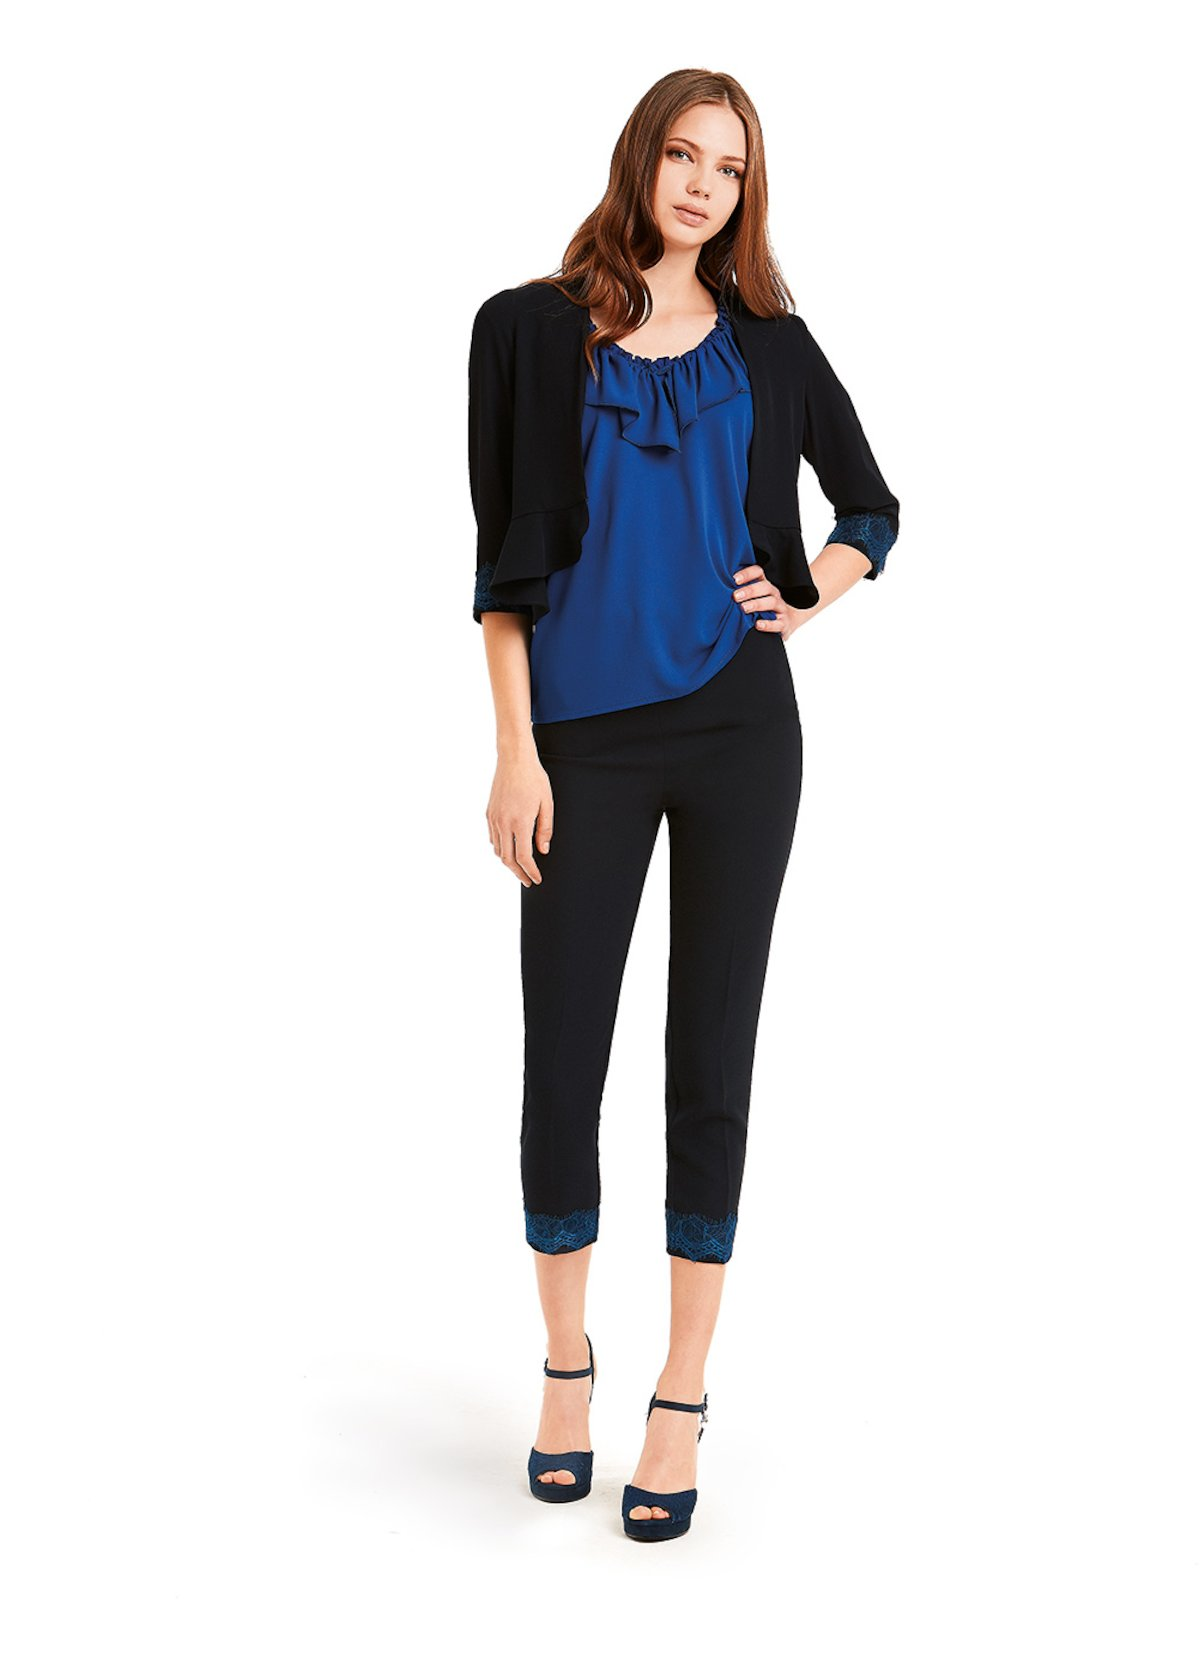 Claudio shrug with ruffles on the bottom - Medium Blue